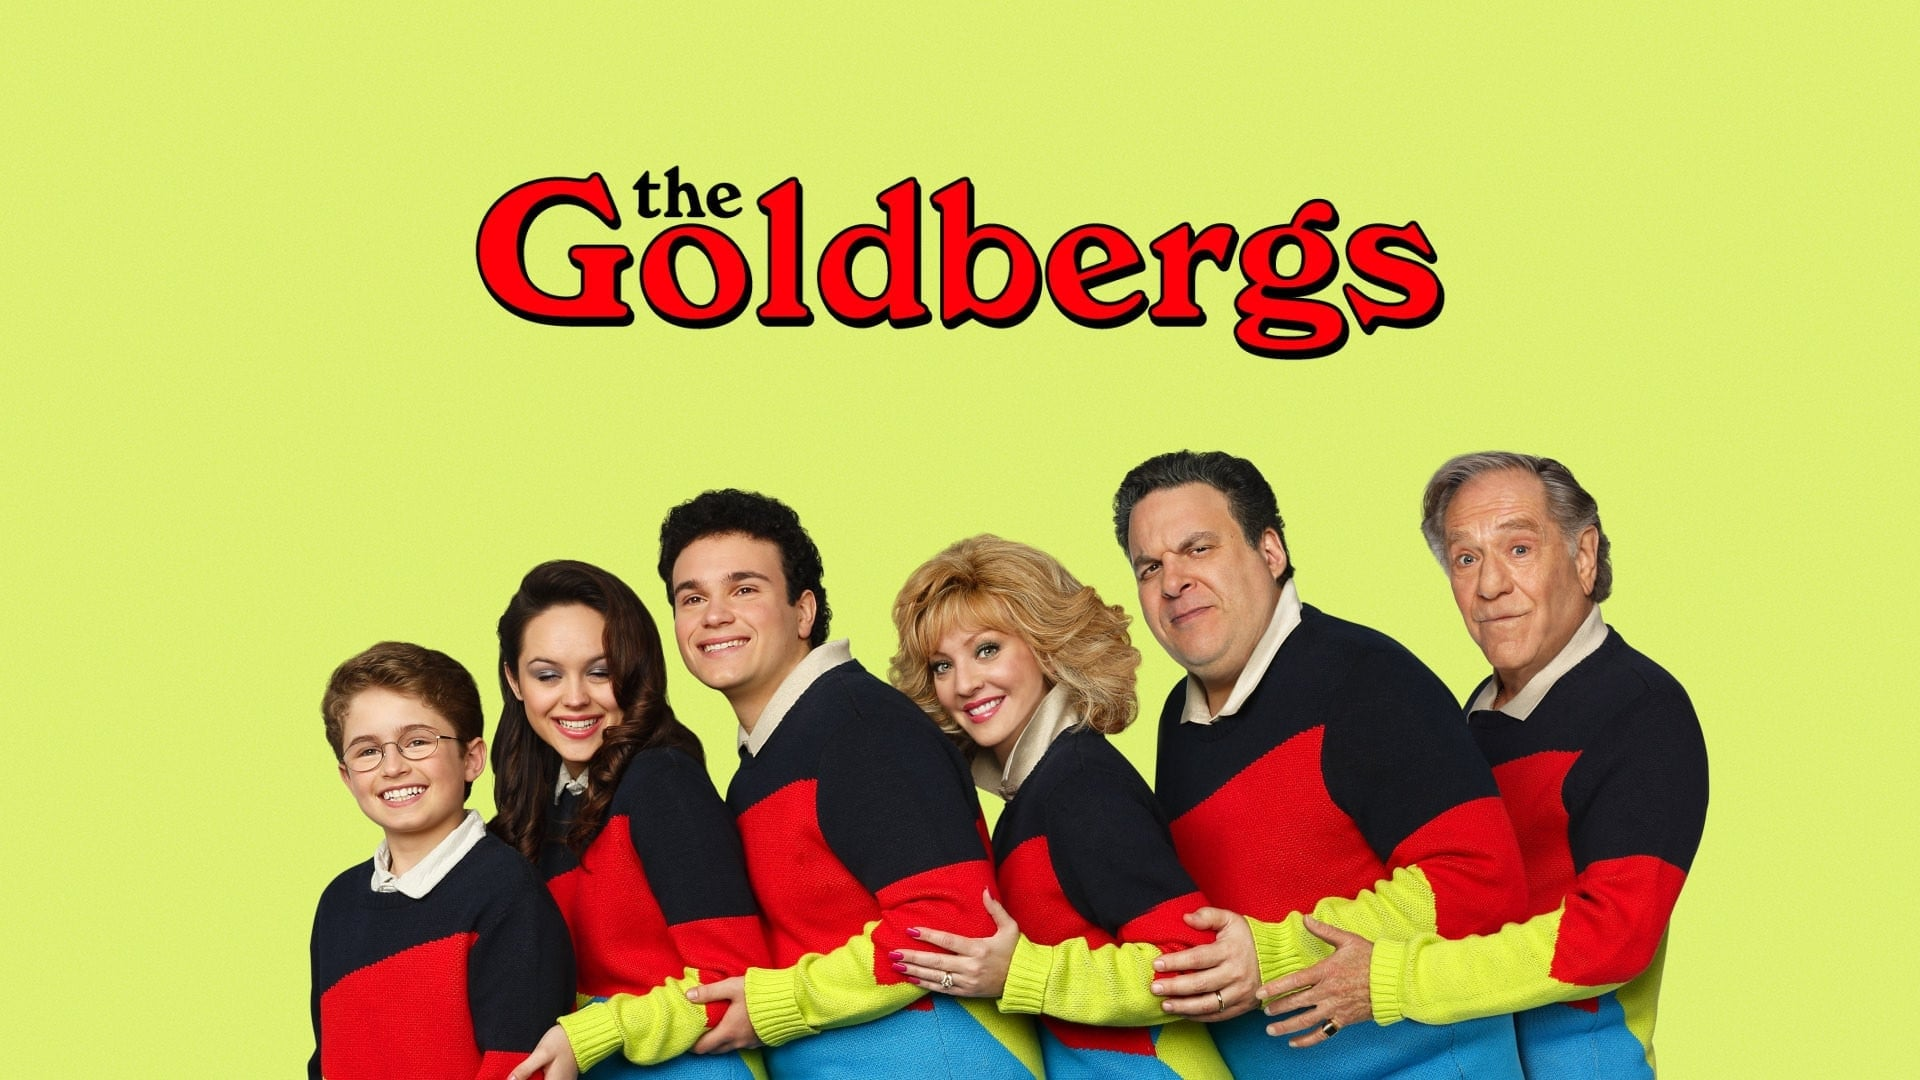 The Goldbergs - Season 6